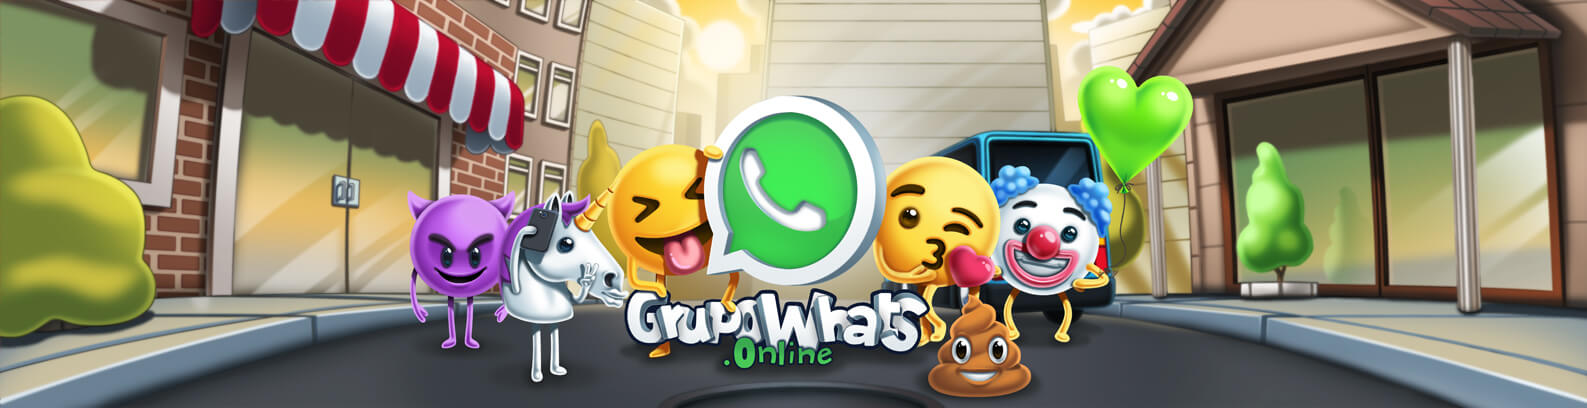 Links para grupos do Whatsapp - GrupoWhats.online